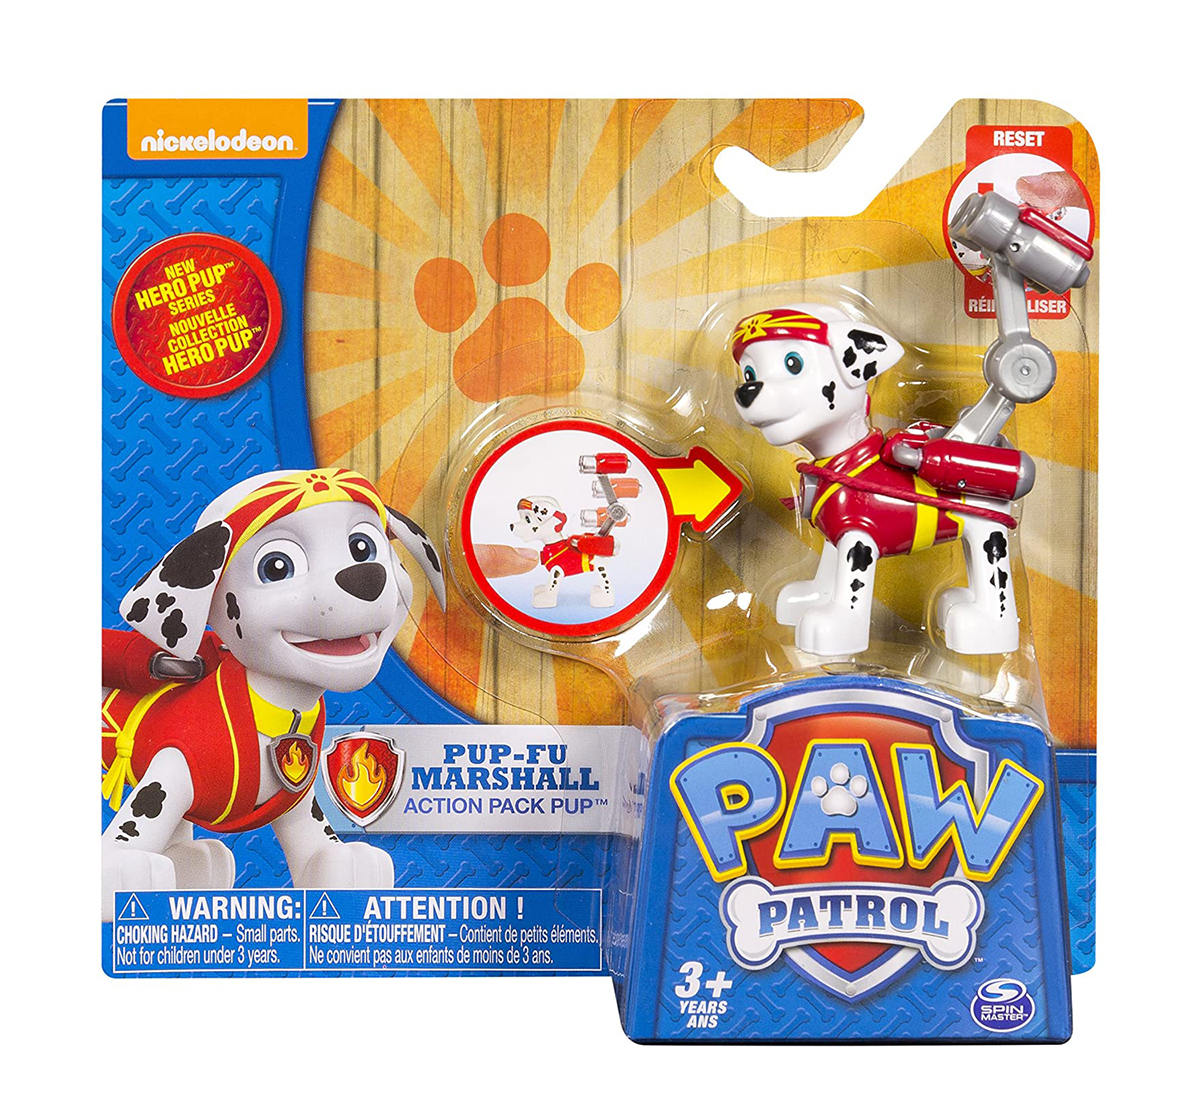 Paw Patrol   Paw Patrol Hero Pup FigureAssorted Activity Toys for Kids age 3Y+